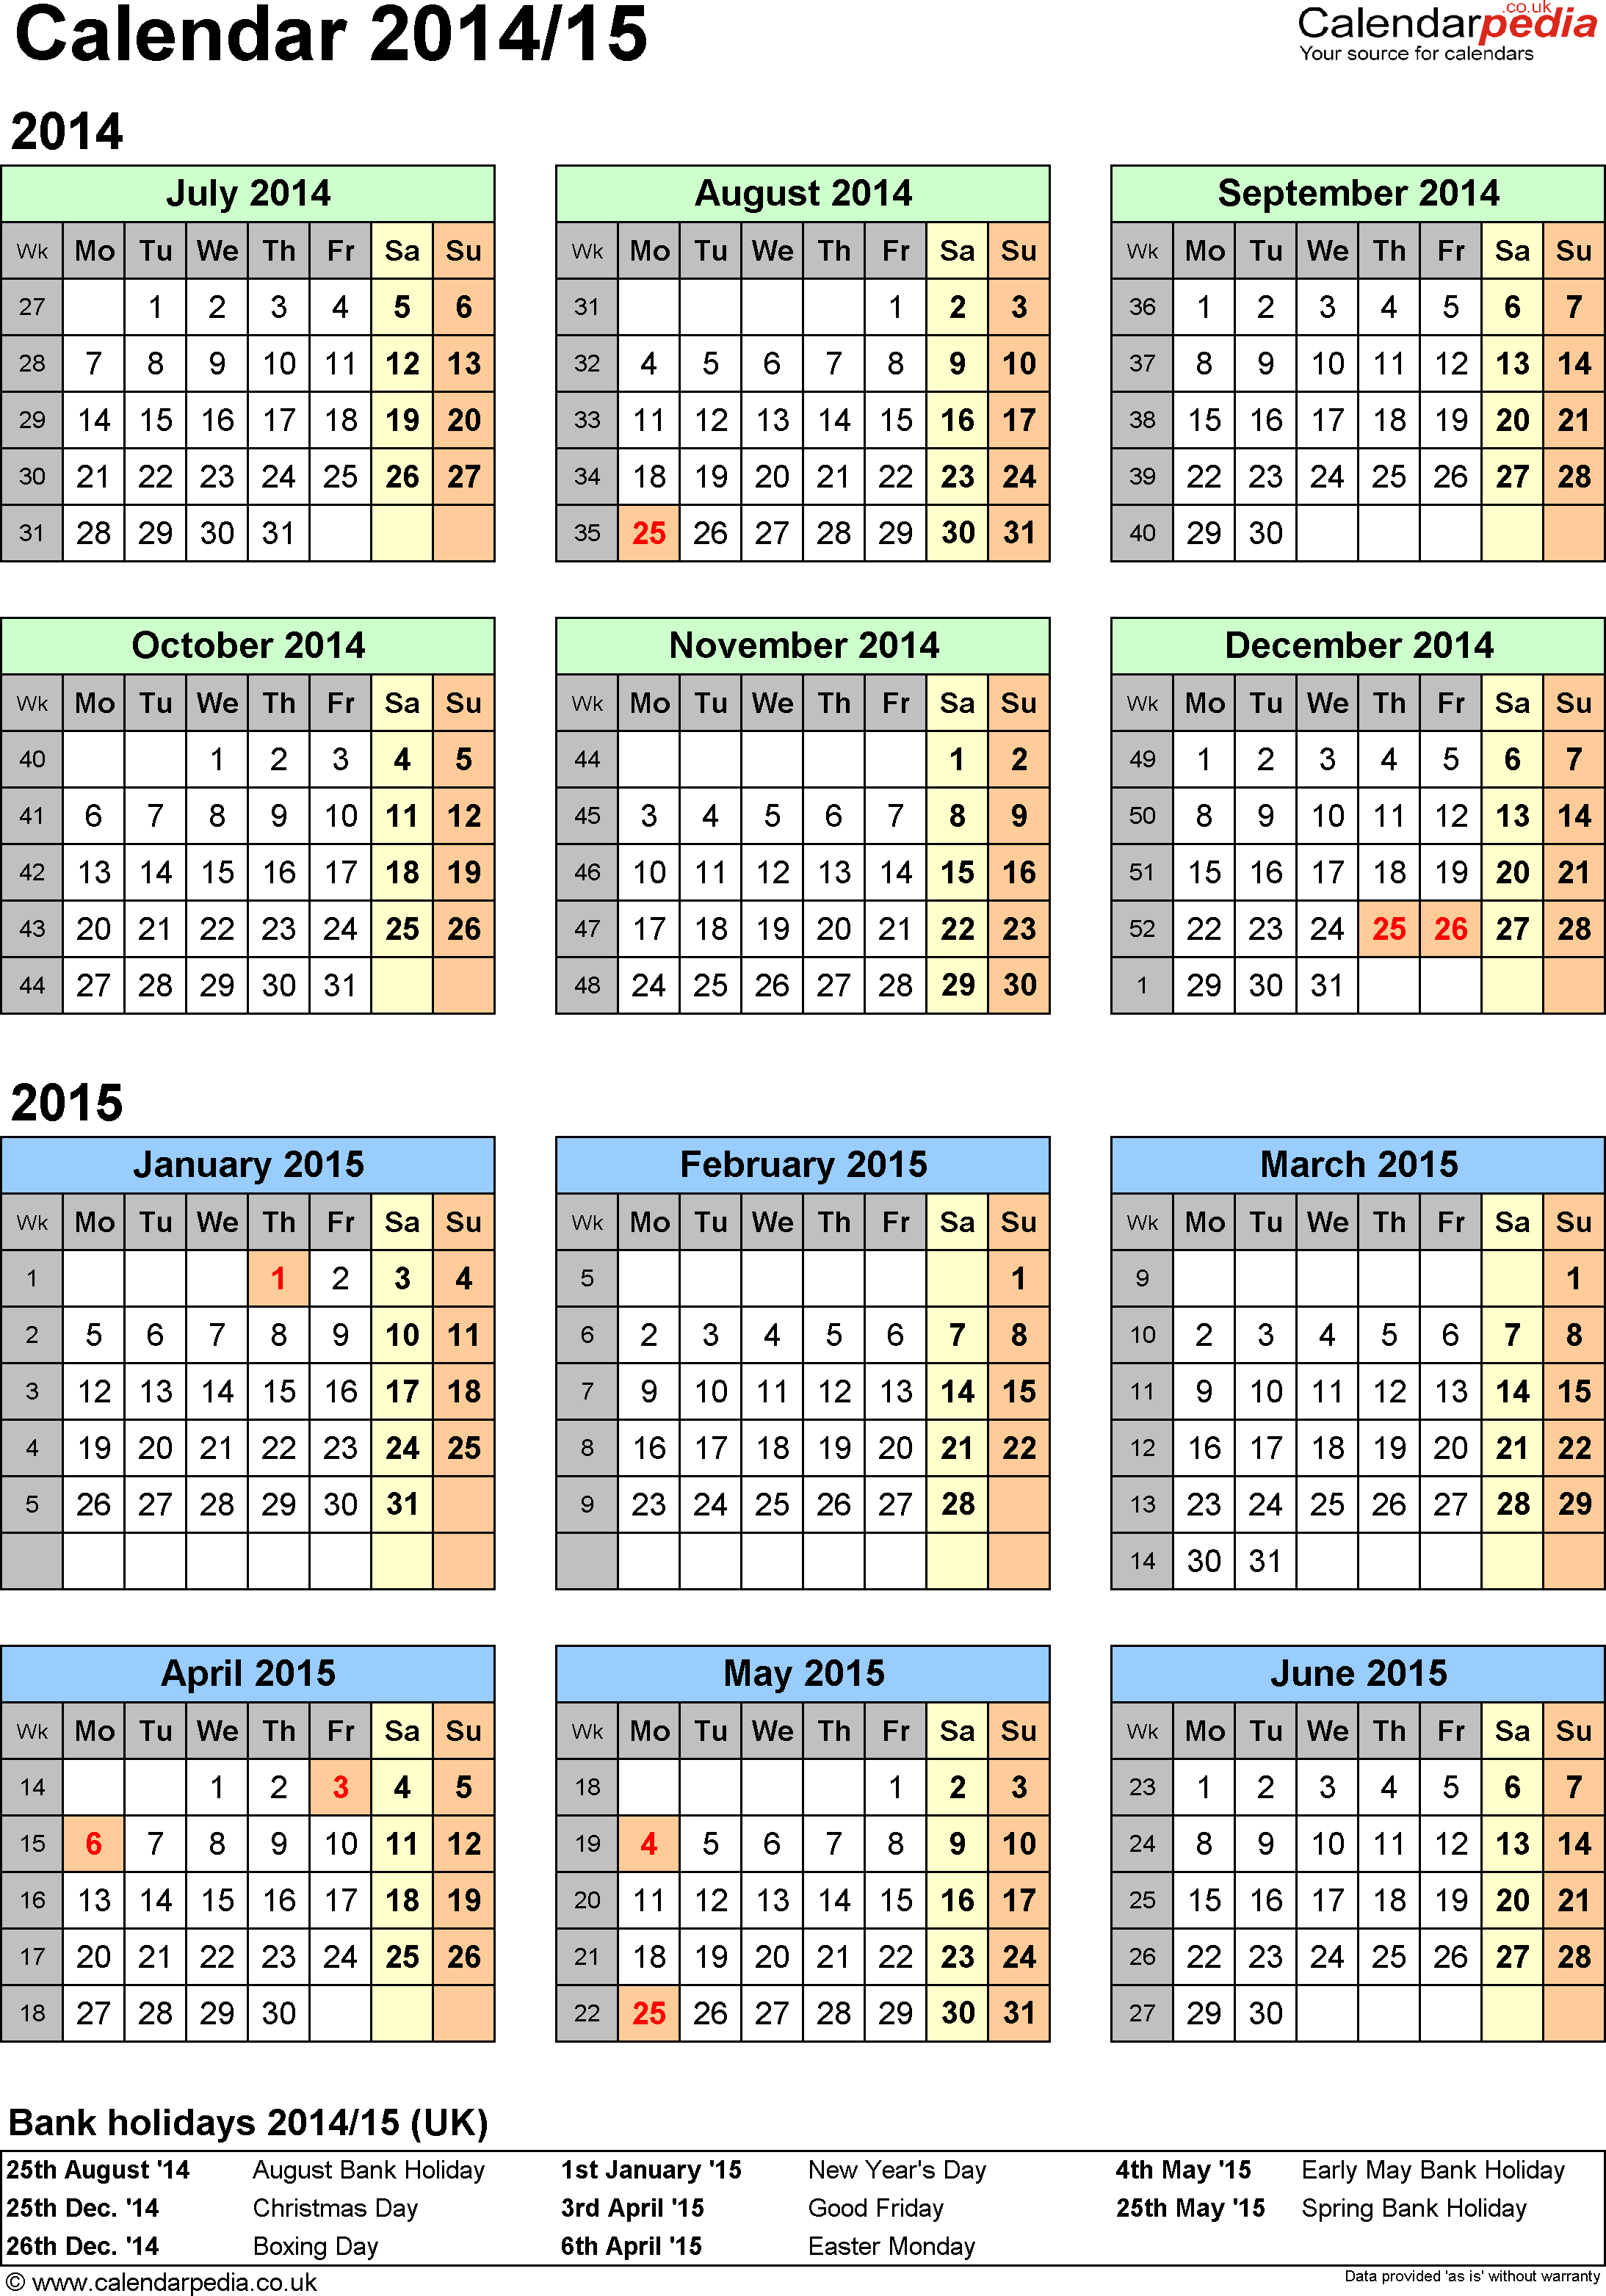 Template 2: Excel template for half year calendar 2014/2015 (portrait orientation, 1 page, A4)